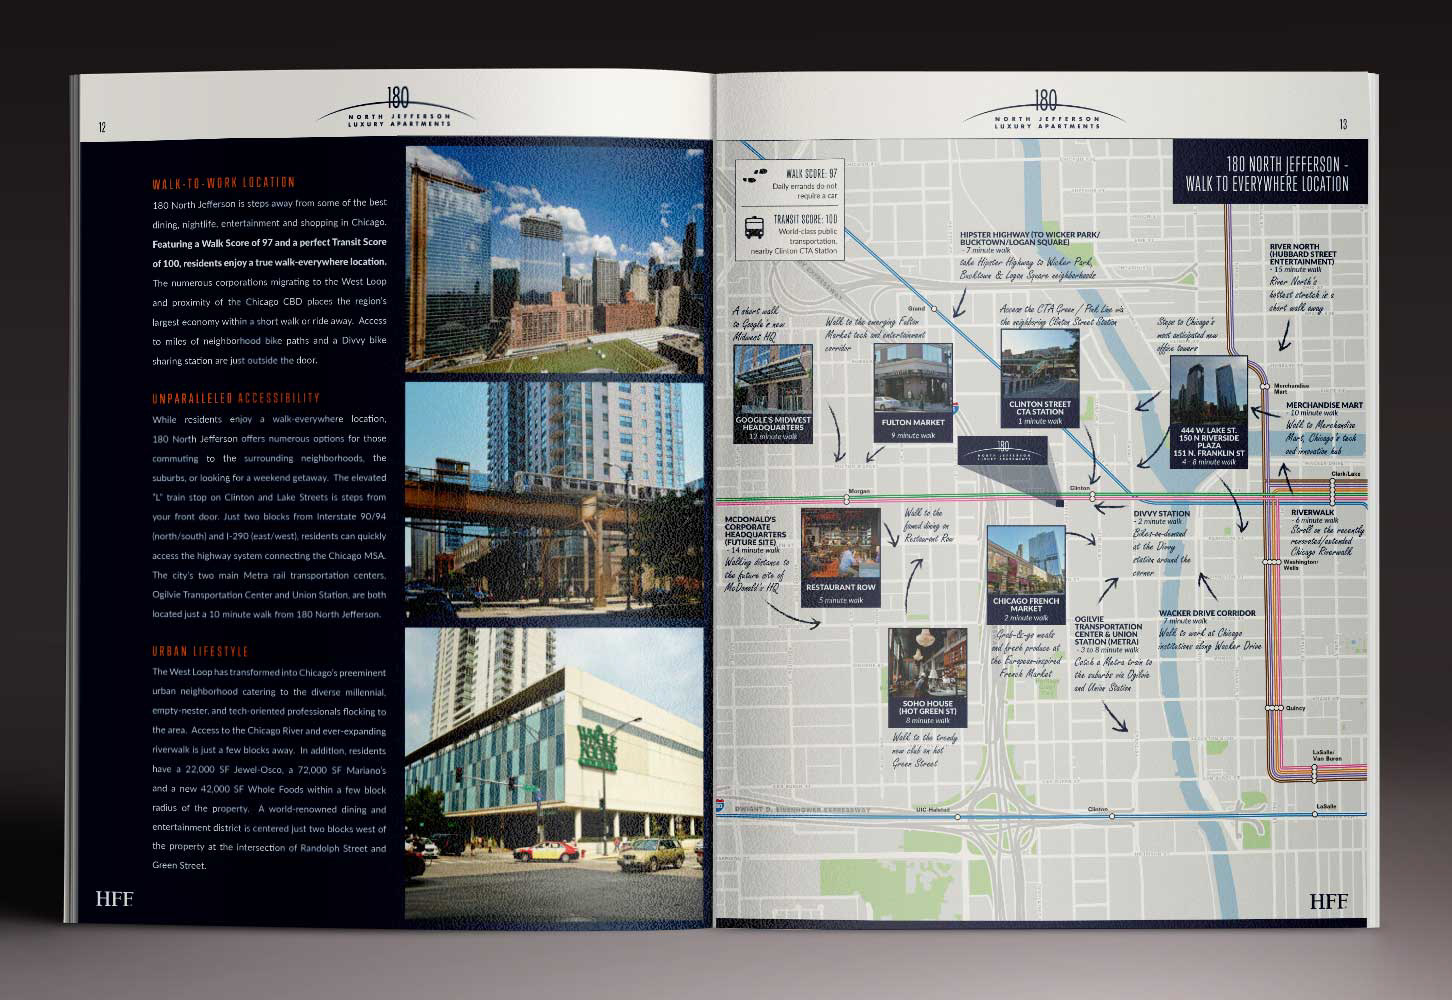 apartment brochure design. Cover Brochure Design. Maps In The Marketing Campaigns Presents Proximity Of Amenities To Property. Create A Powerful Source Reference For Apartment Design S